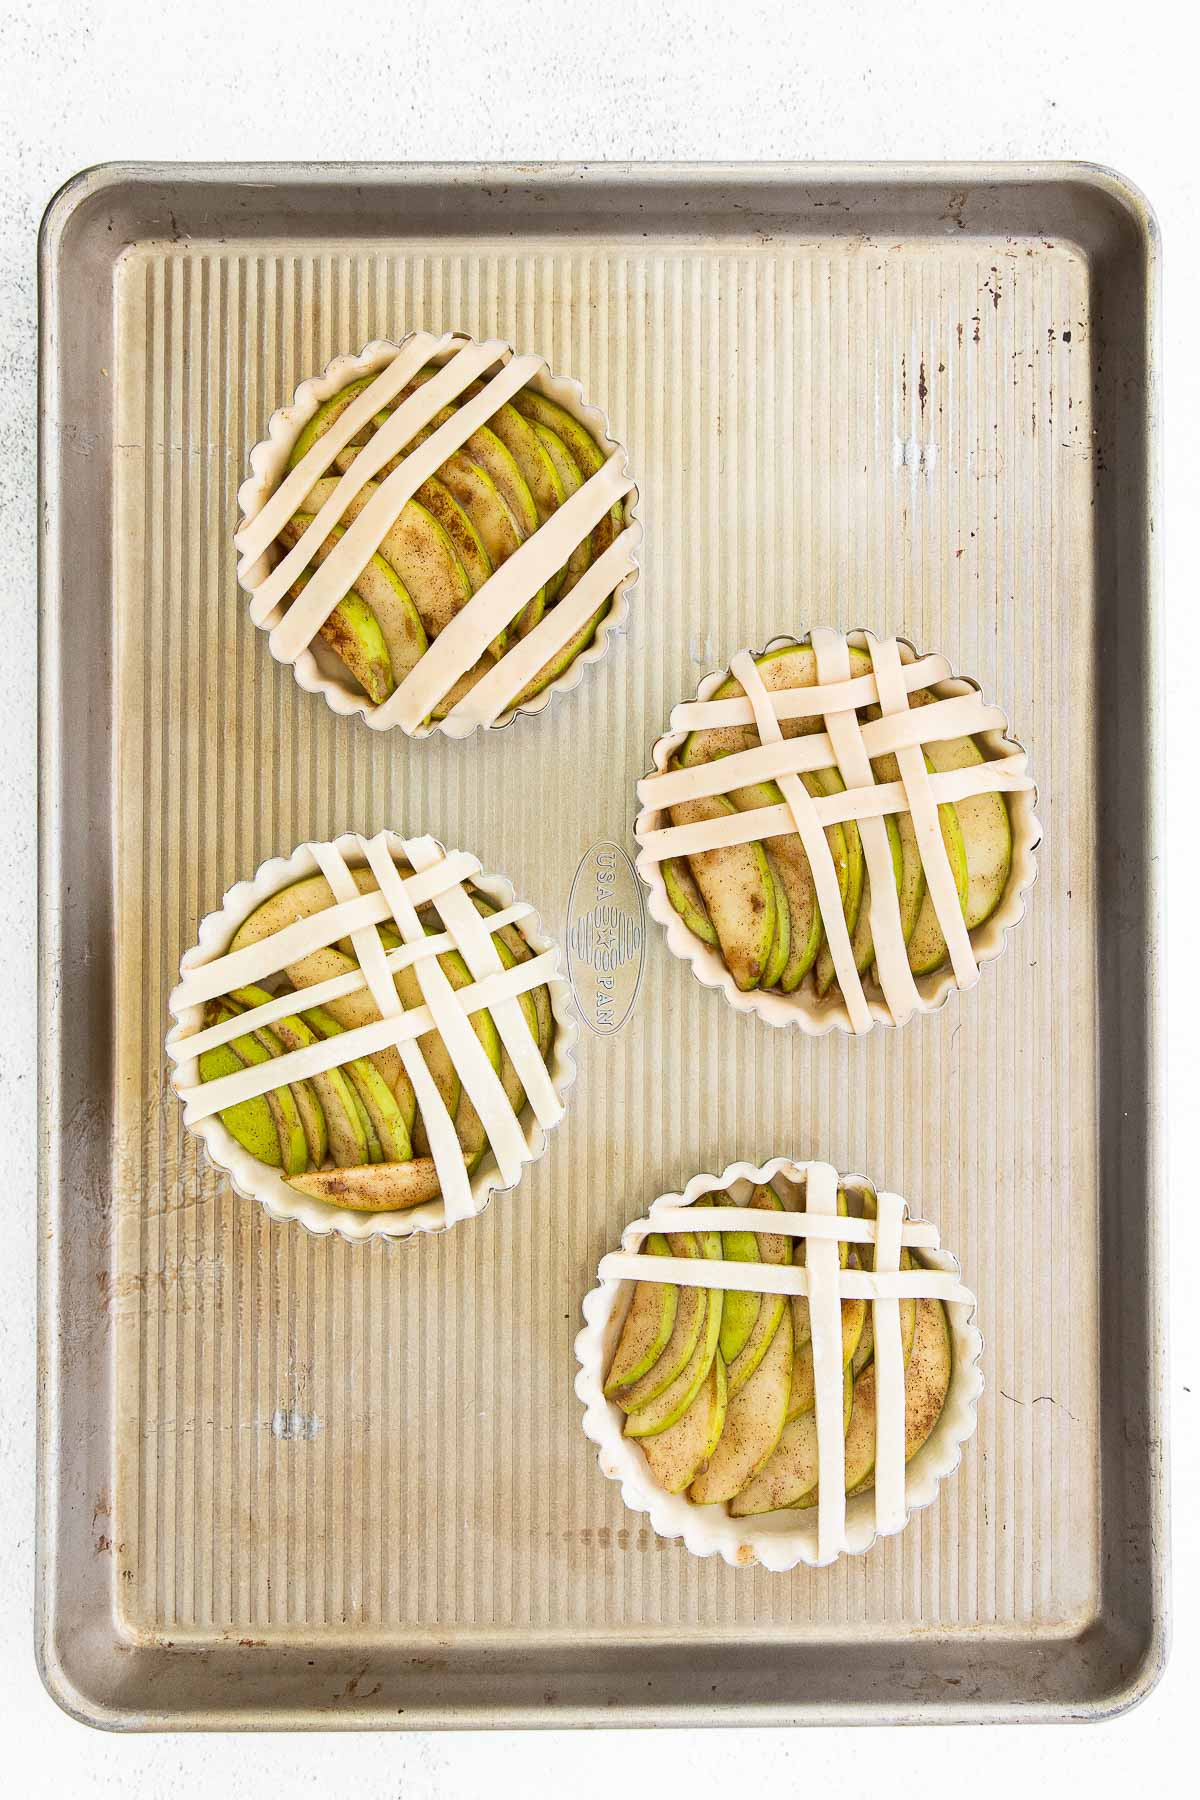 baking sheet with four tart pans filled with apple slices and topped with dough strips